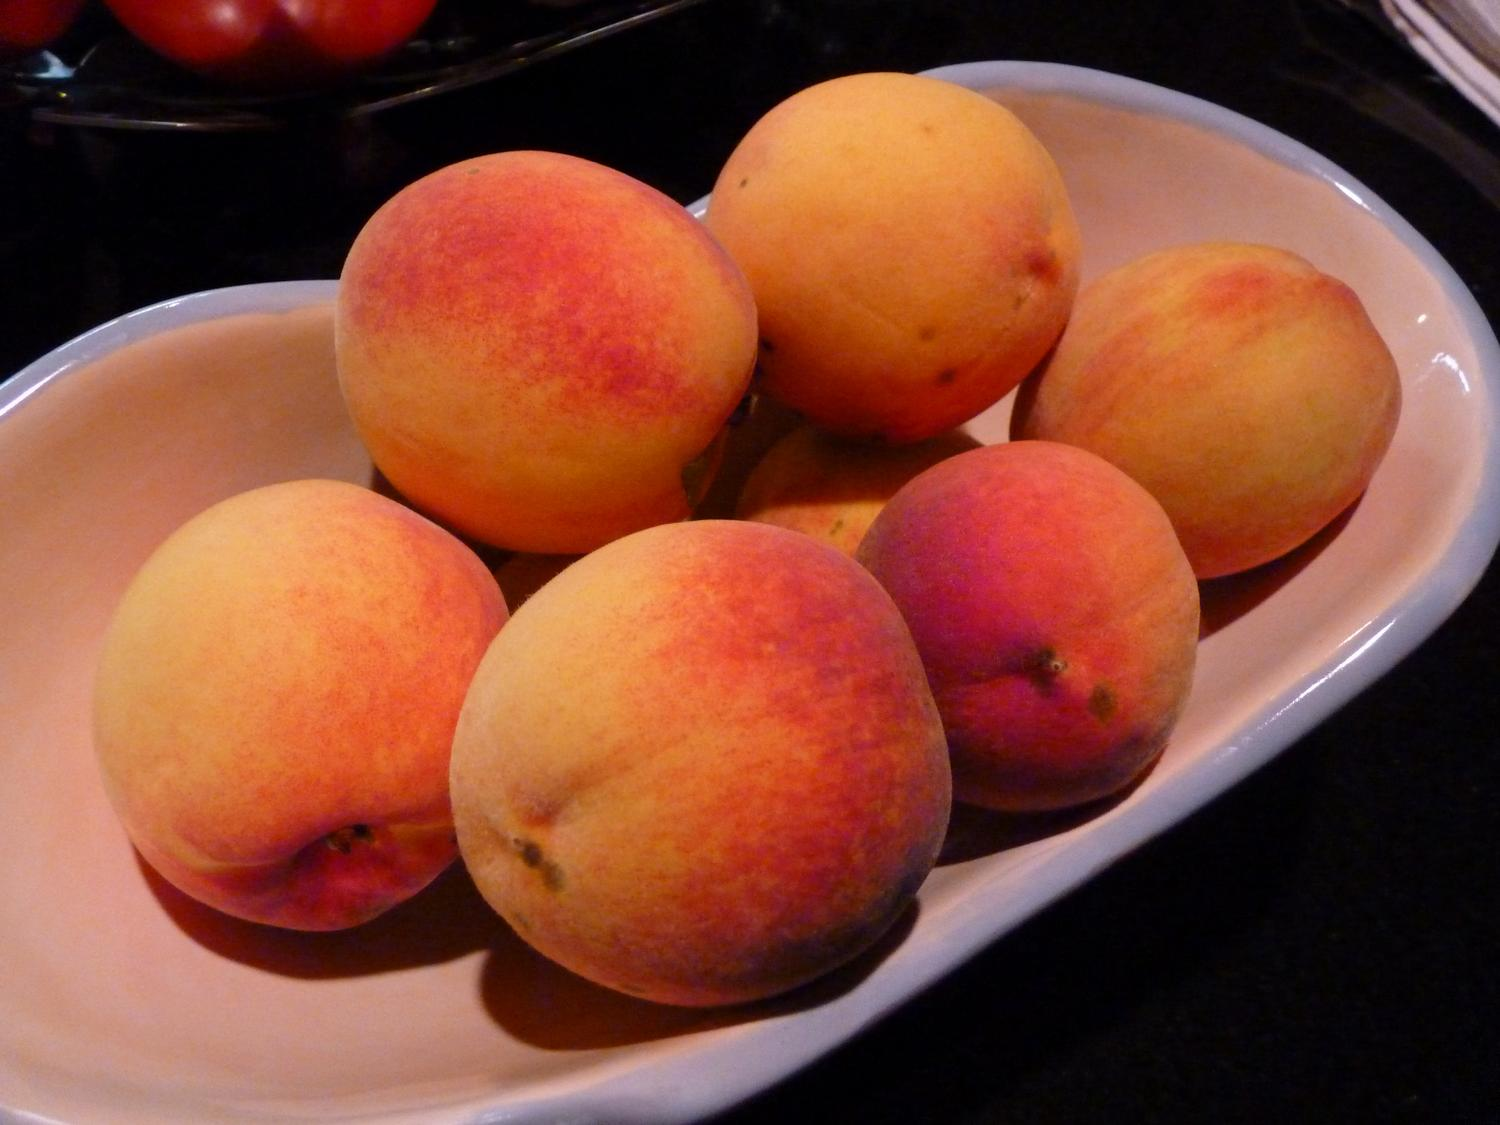 - Peaches at my son's house. - Panasonic DMC-FZ35 - Tony Karp, design, art, photography, techno-impressionist, techno-impressionism, aerial photography , drone , drones , dji , mavic pro , video , 3D printing - Books -